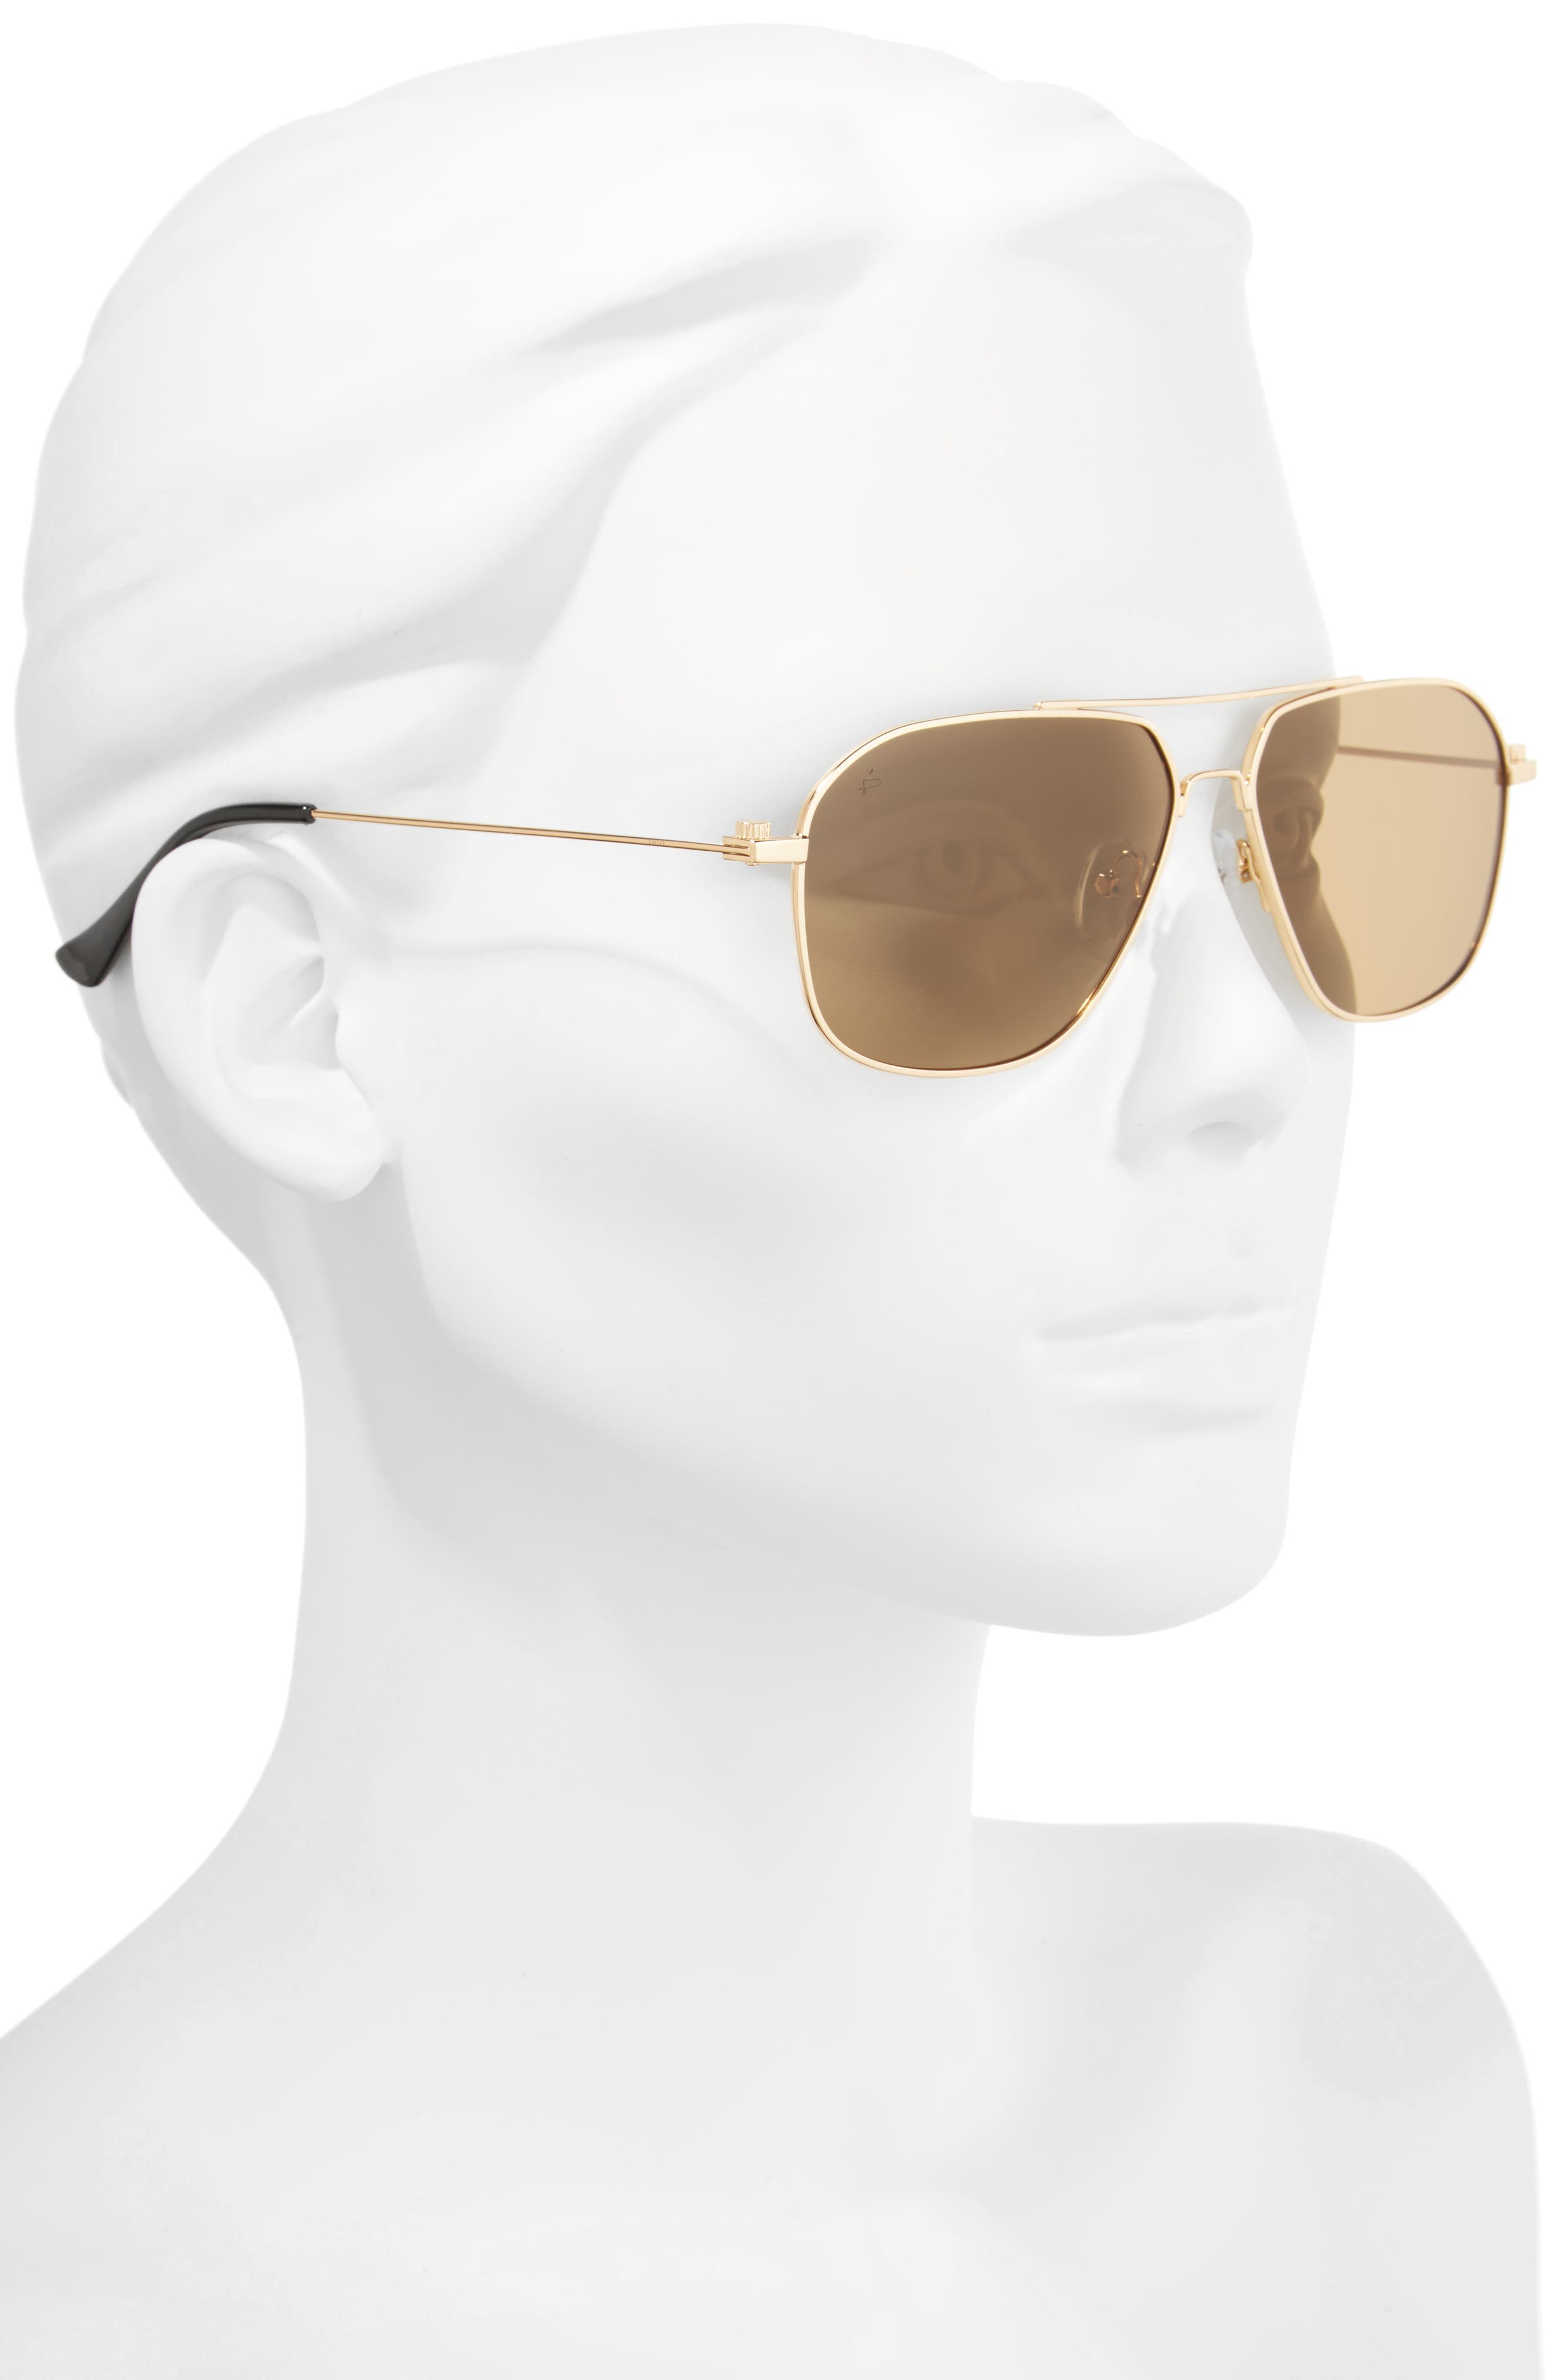 Privé Revaux The Marquise 58mm Aviator Sunglasses,                             Alternate thumbnail 2, color,                             Metal/ Gold